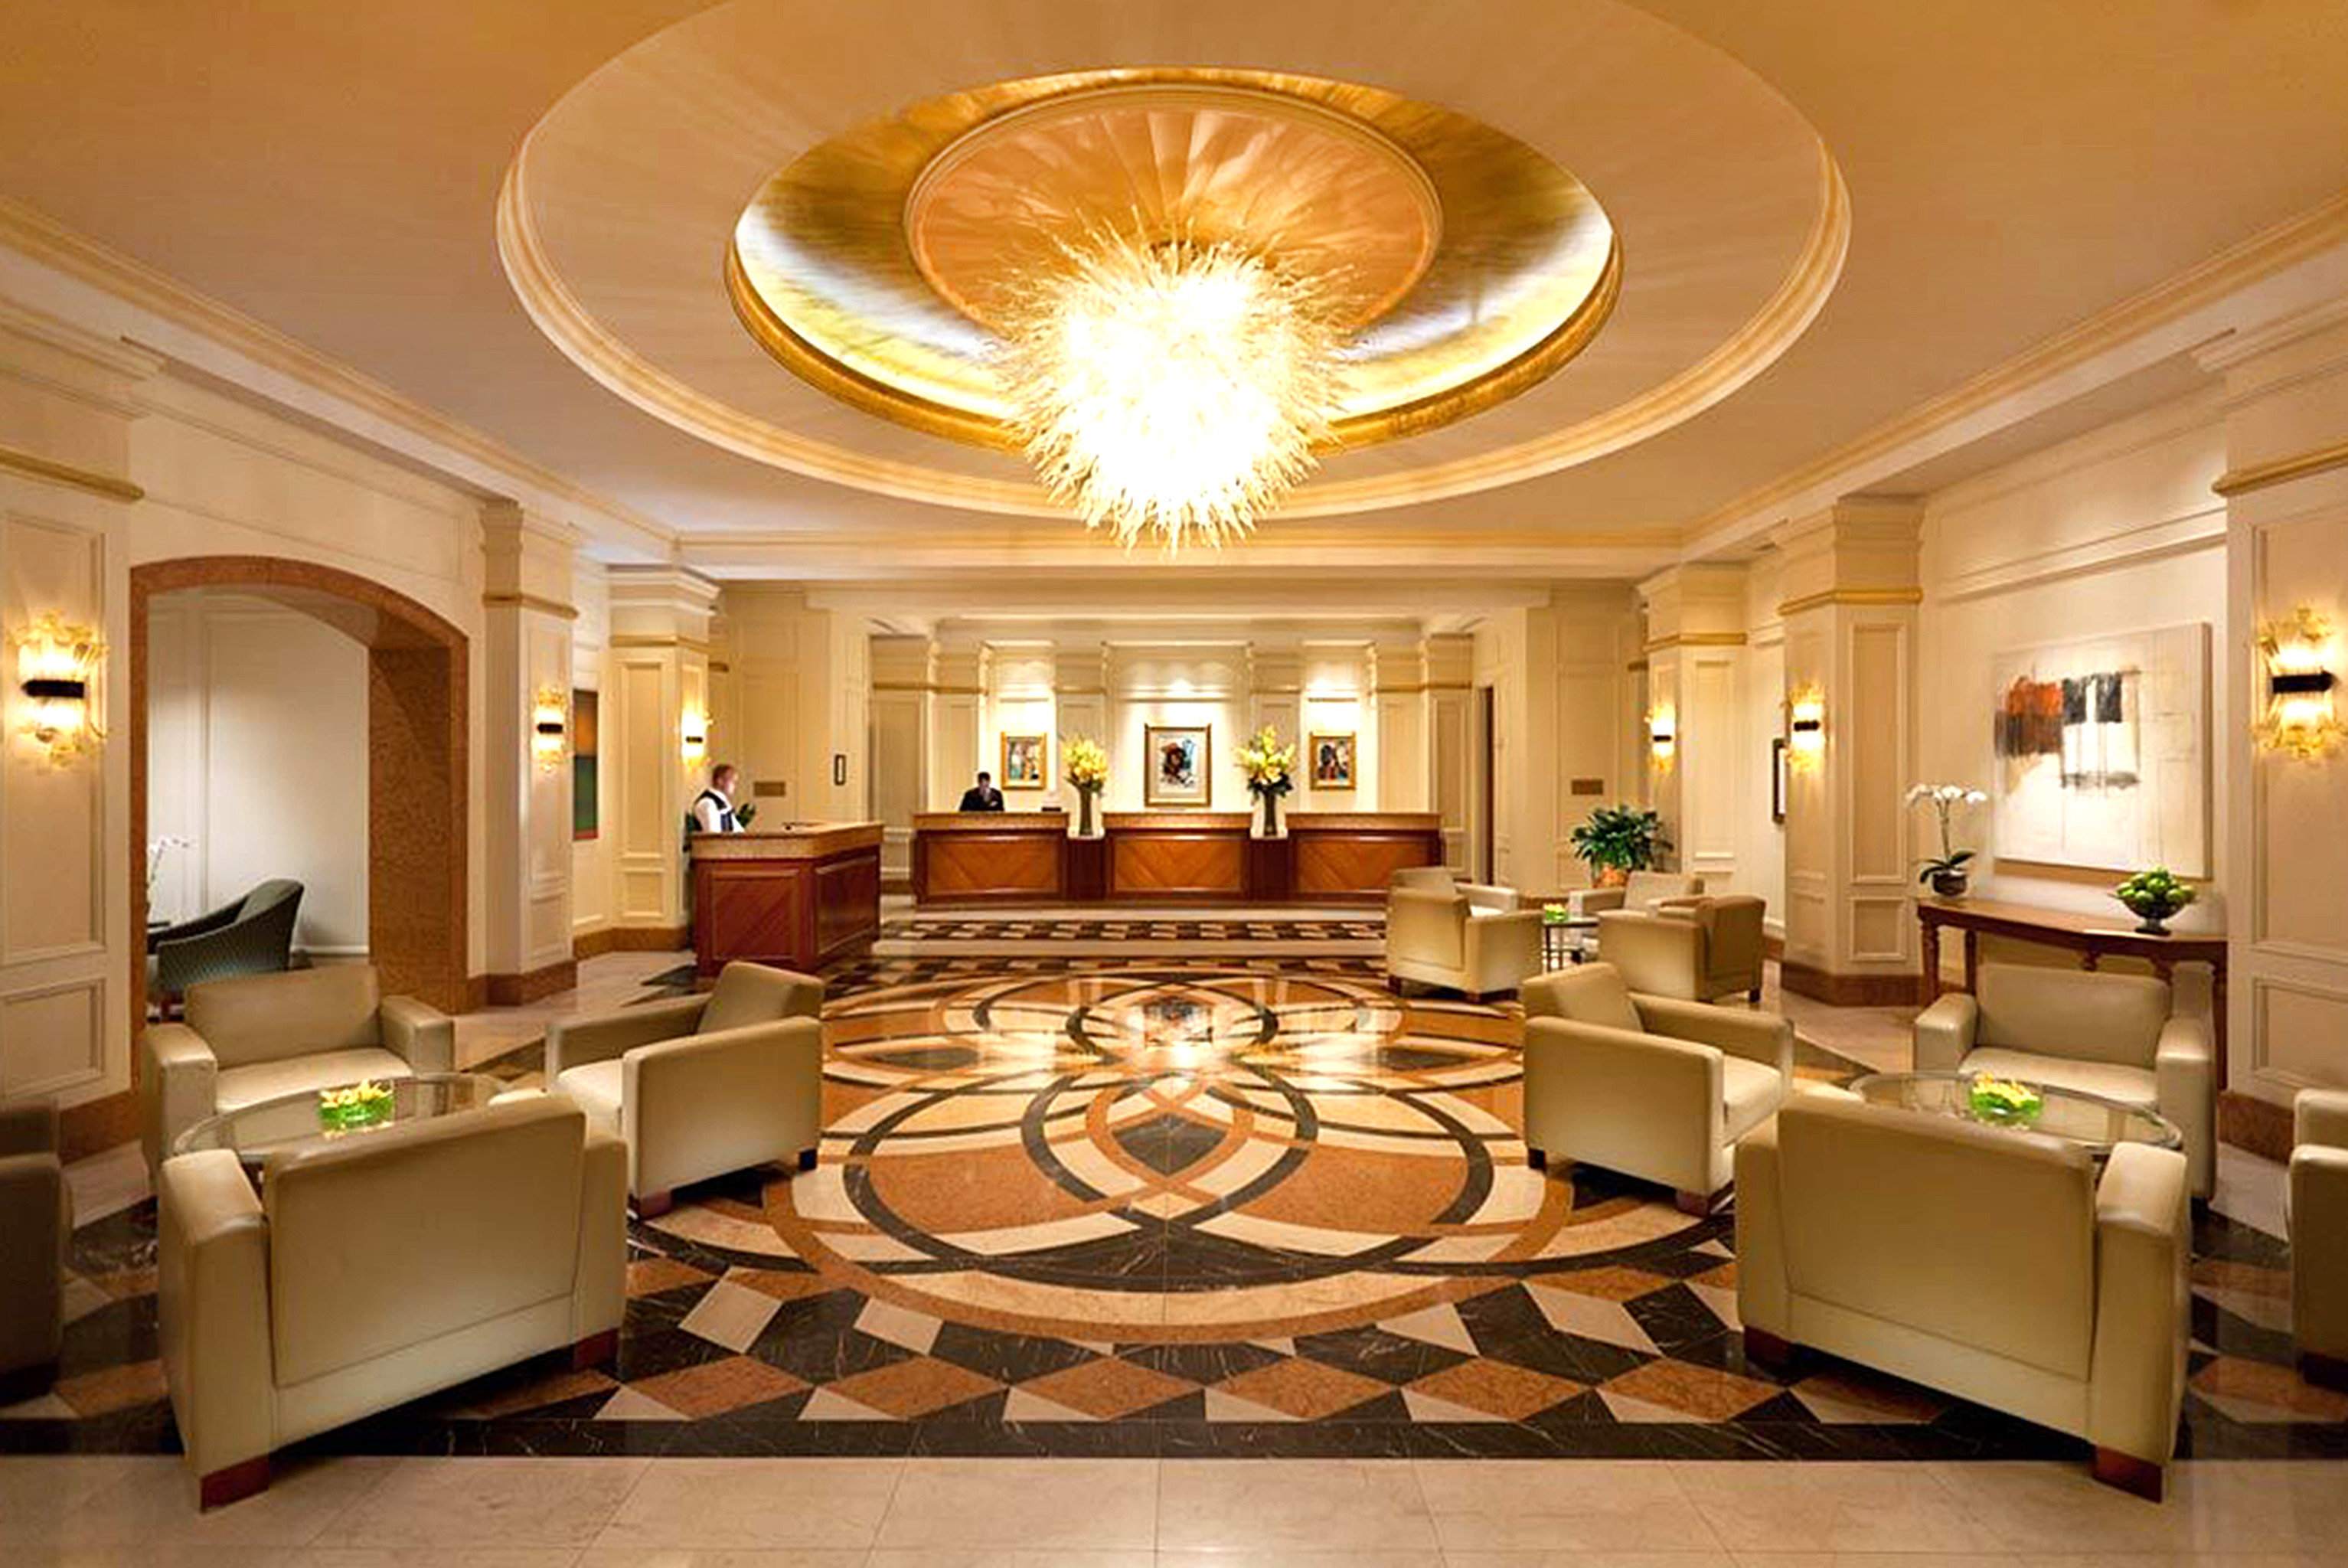 Lounge Luxury Modern Lobby property living room mansion home Suite function hall ballroom recreation room palace